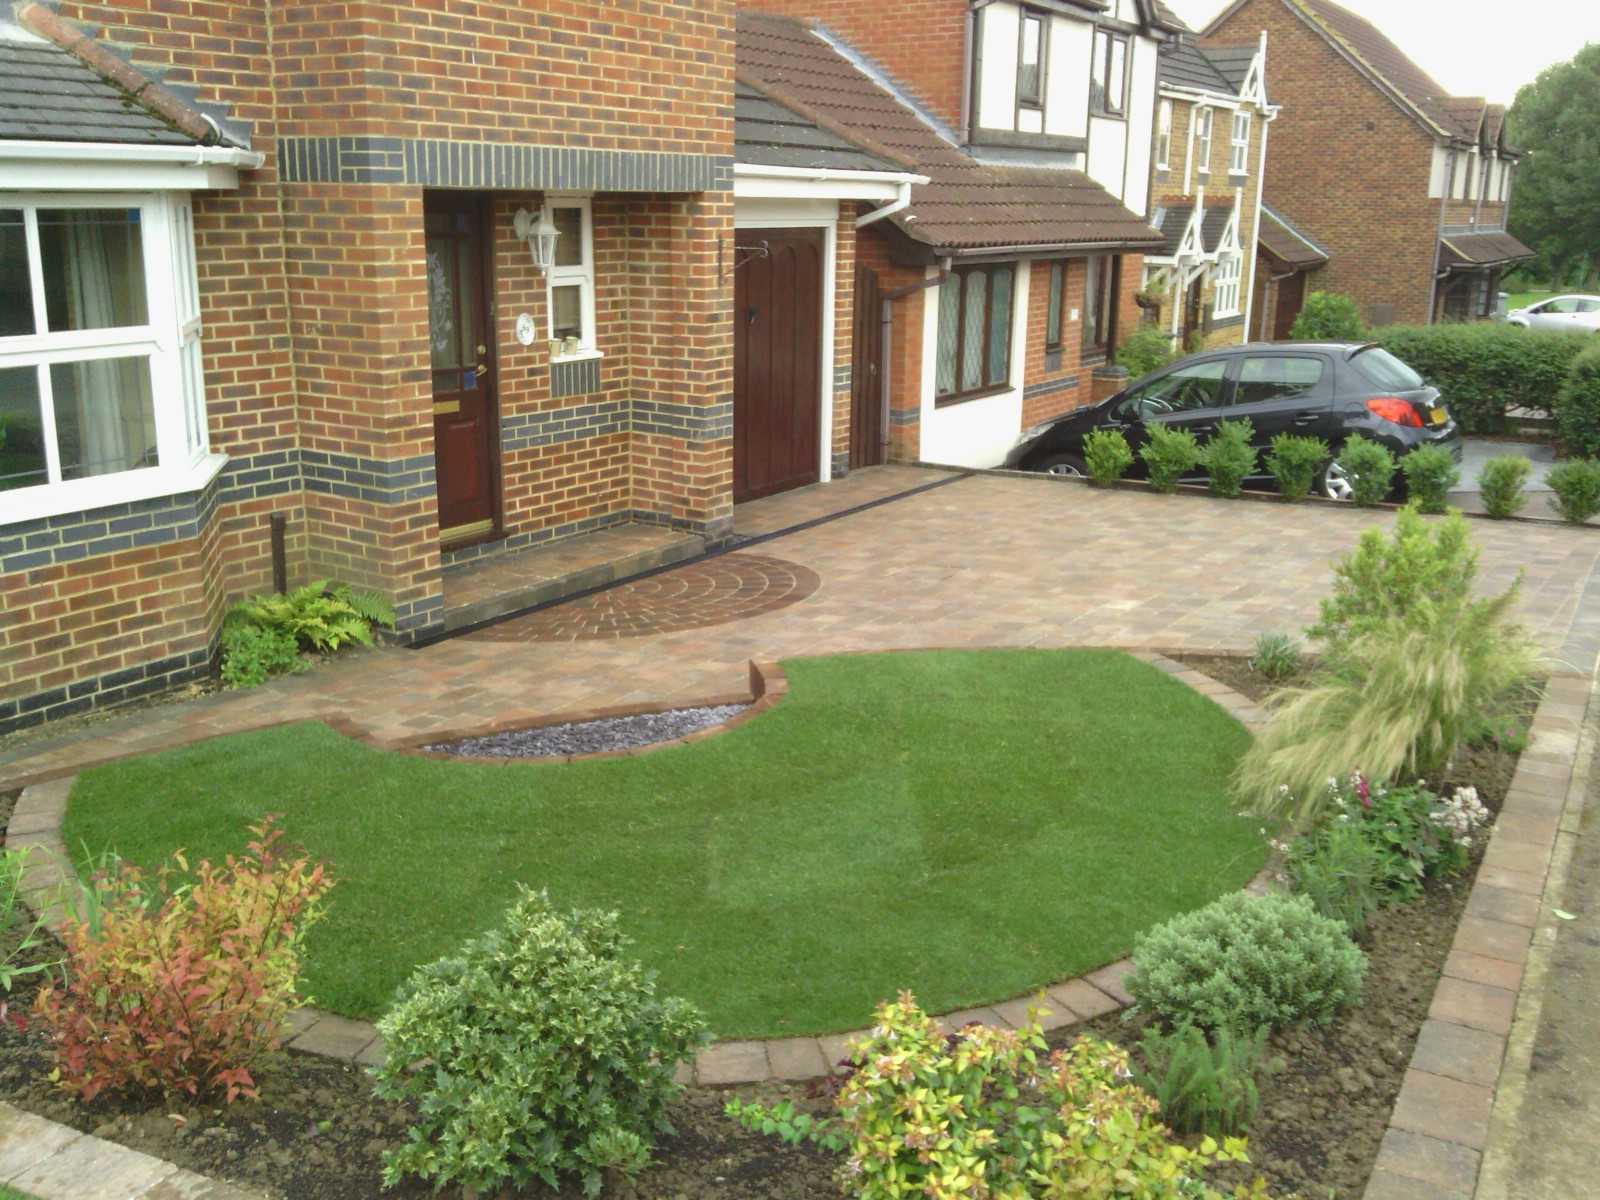 An image of a beautiful block paved driveway with stunning mixed sizes of blocks and attractive terraced garden adjacent to the Driveway